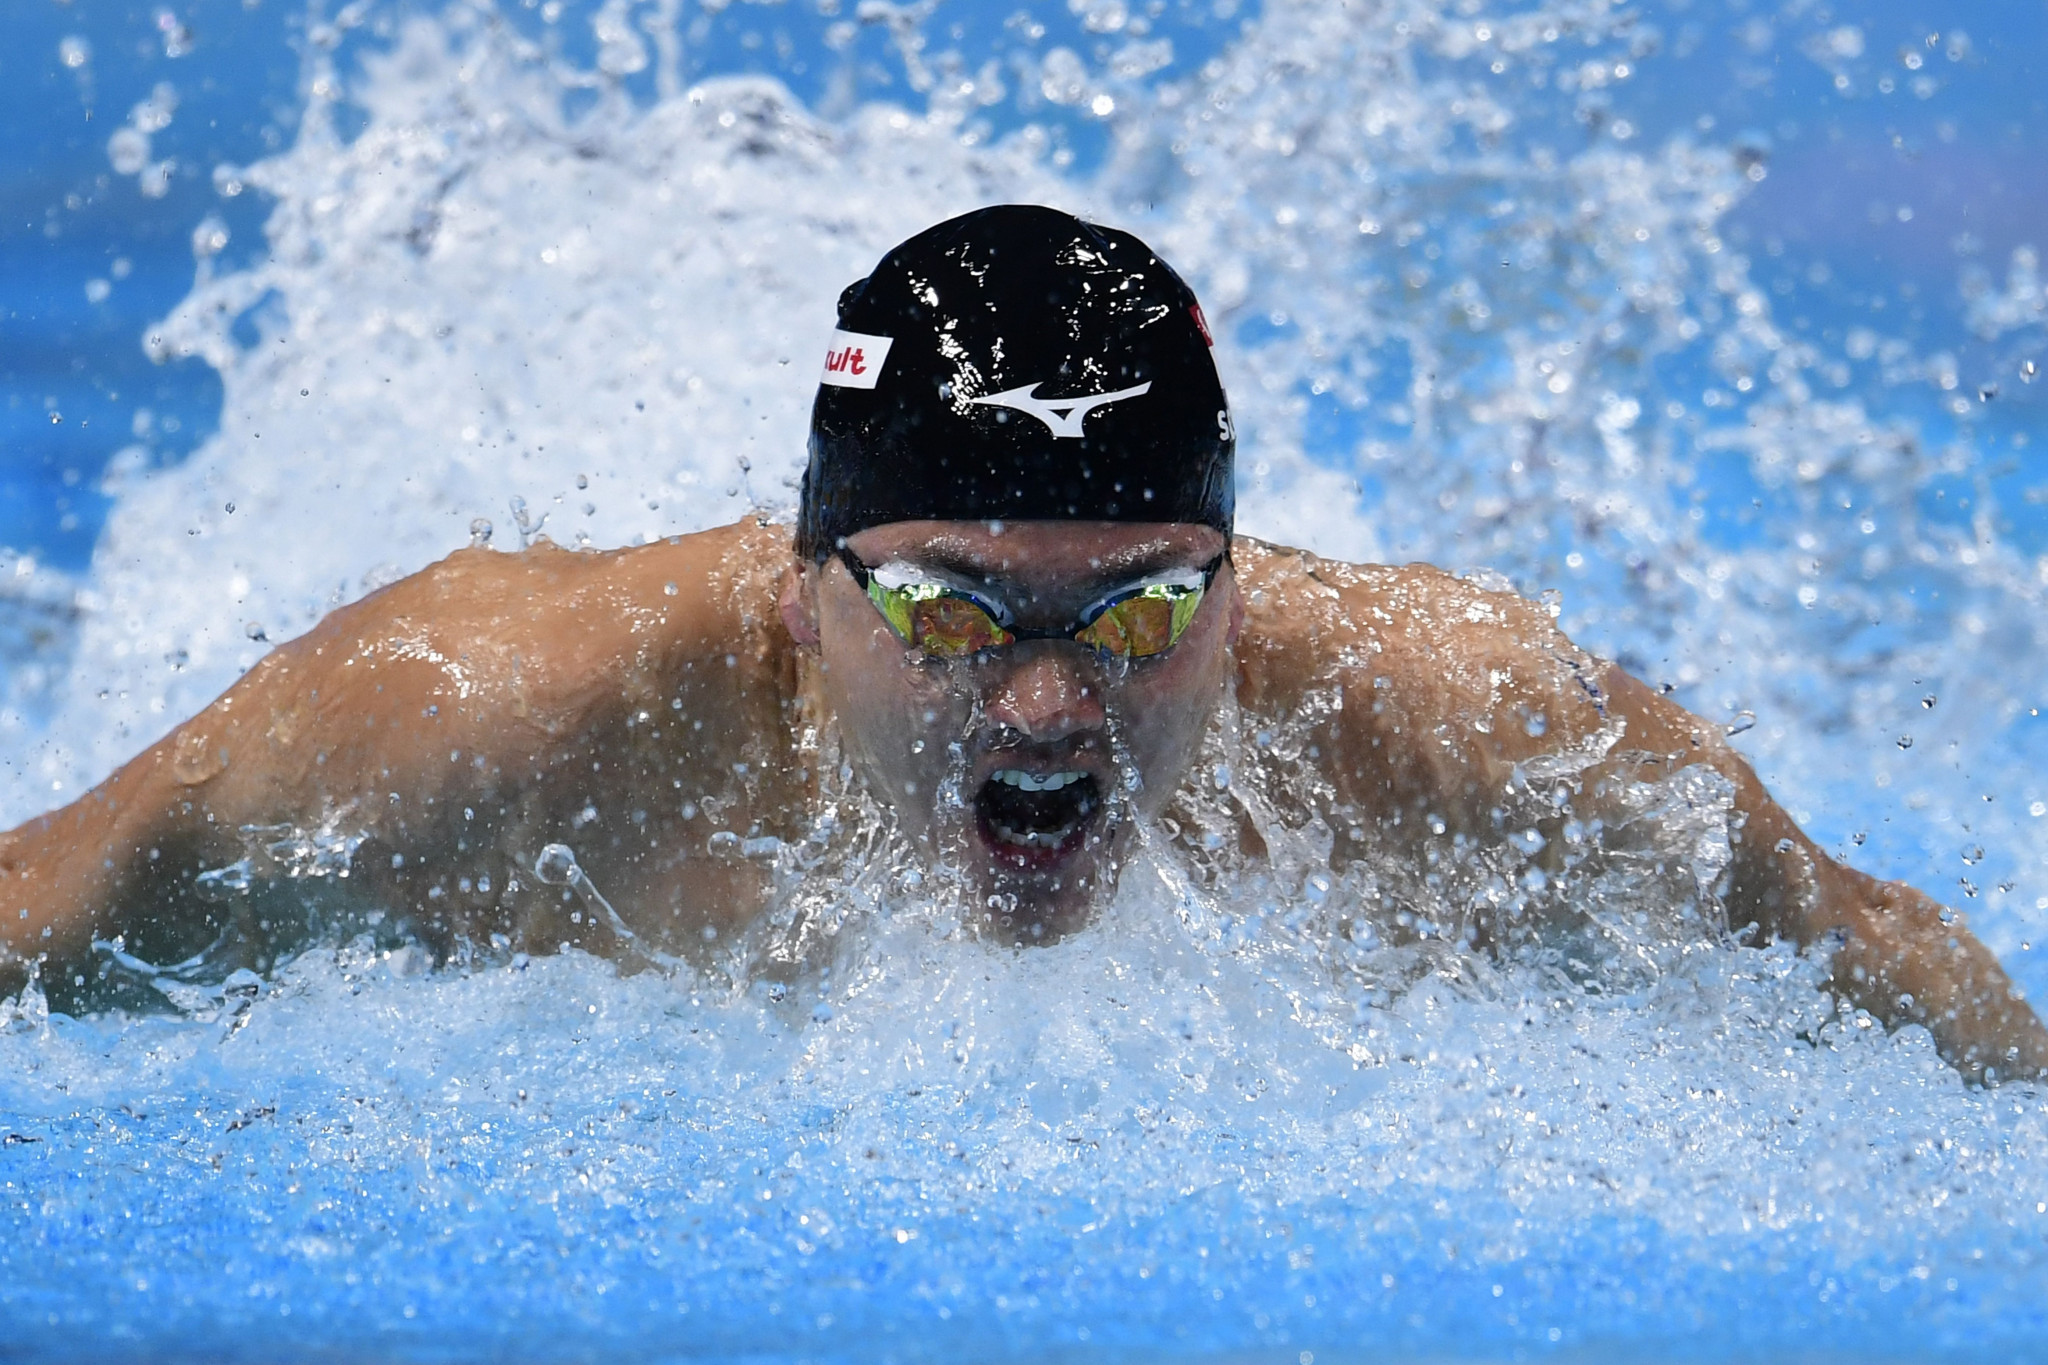 Joseph Schooling won Singapore's first Olympic gold medal in their history, when he finished first in the men's 100 metre butterfly at the Rio 2016 Olympics ©Getty Images